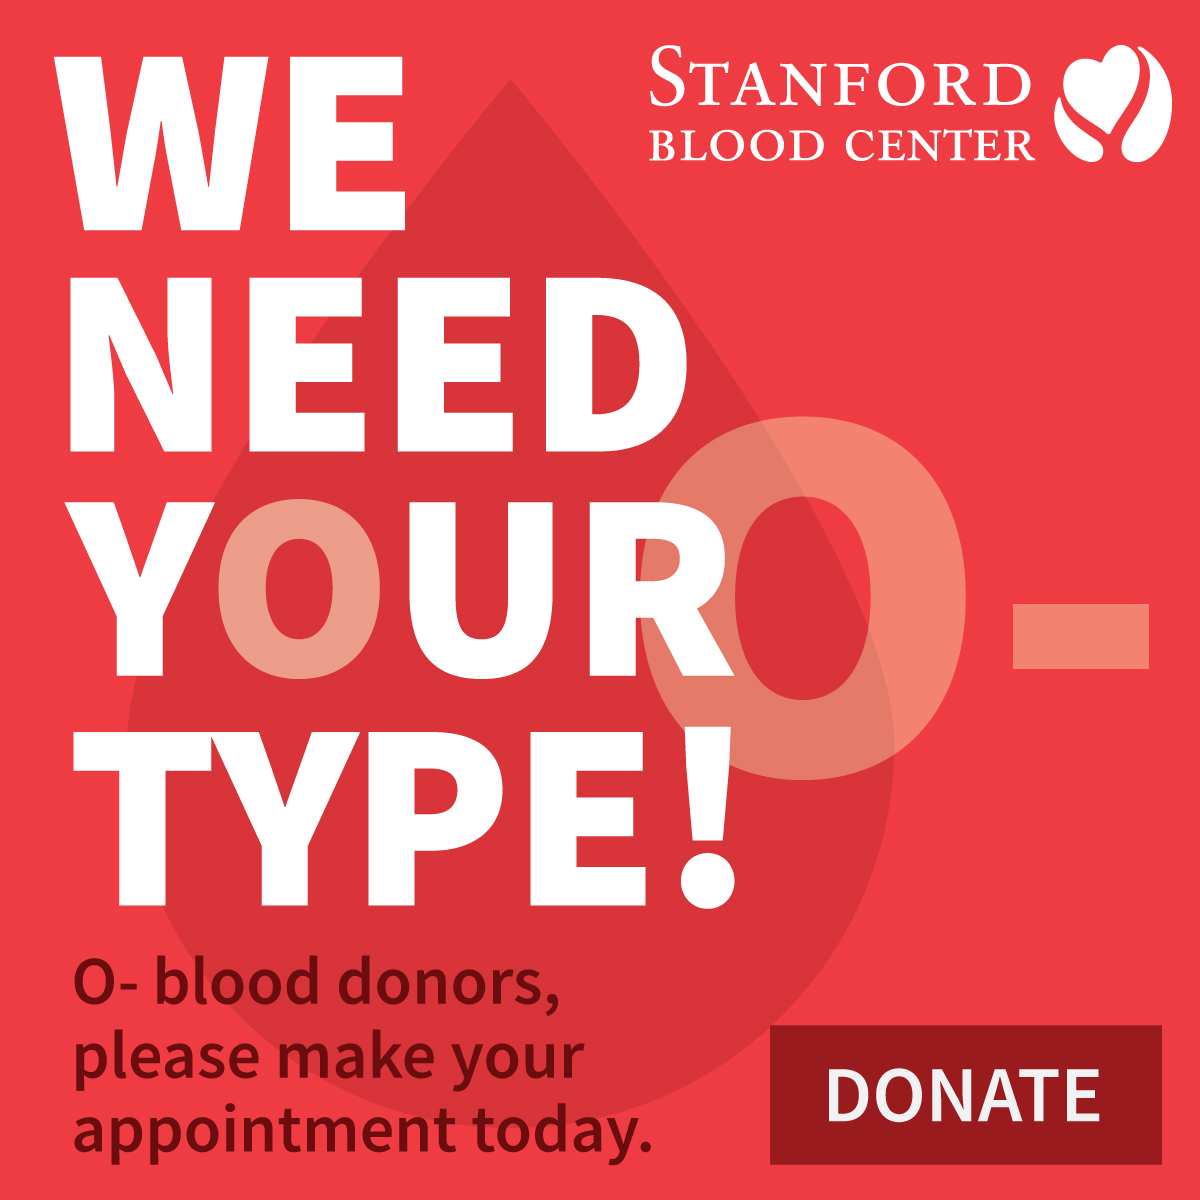 O- blood products needed